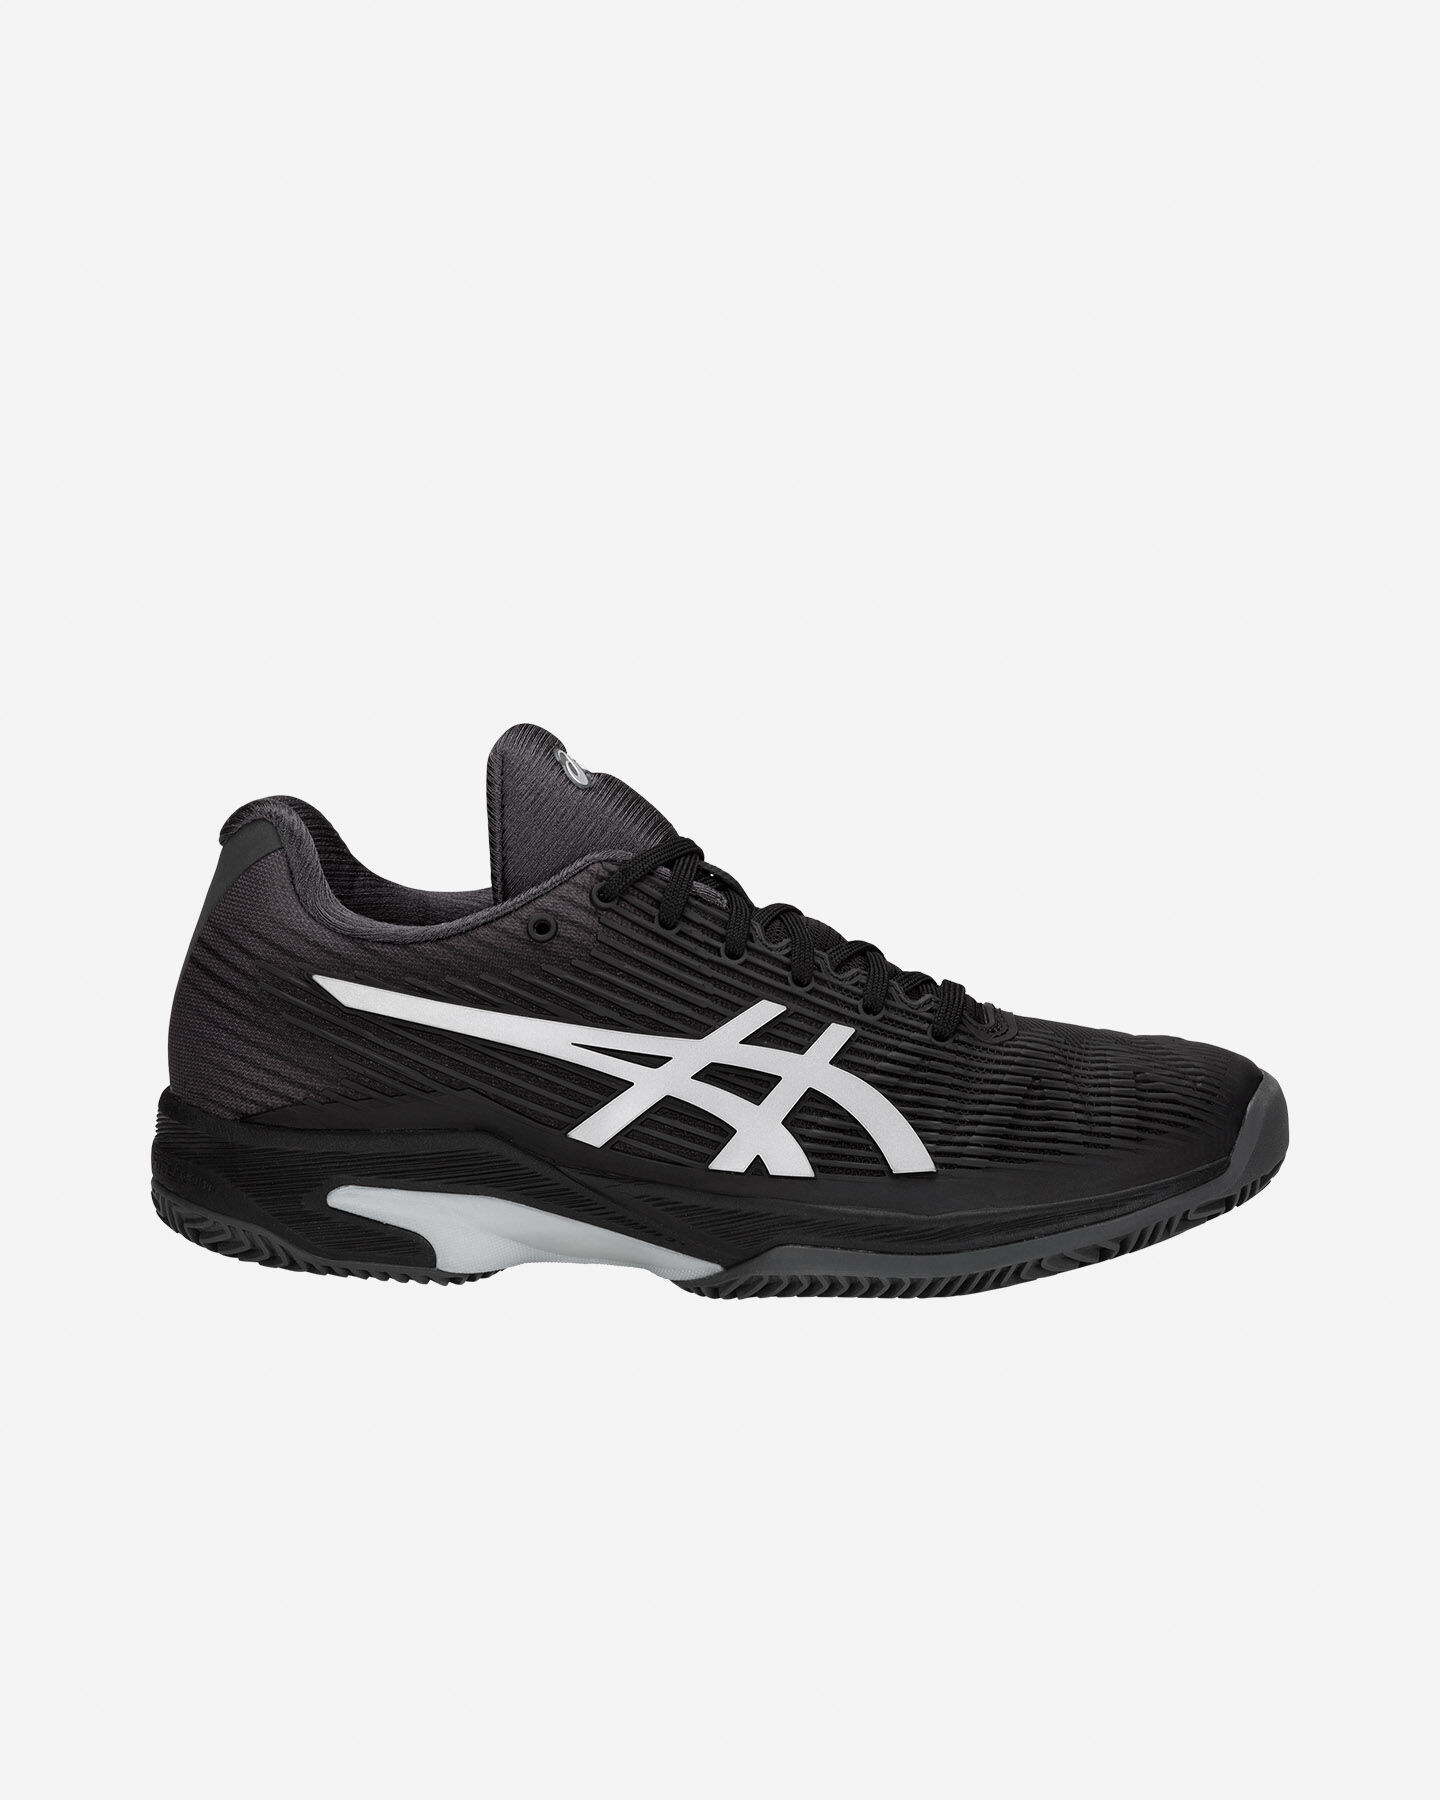 Scarpe tennis ASICS SOLUTION SPEED FF CLAY W S4058702 scatto 0